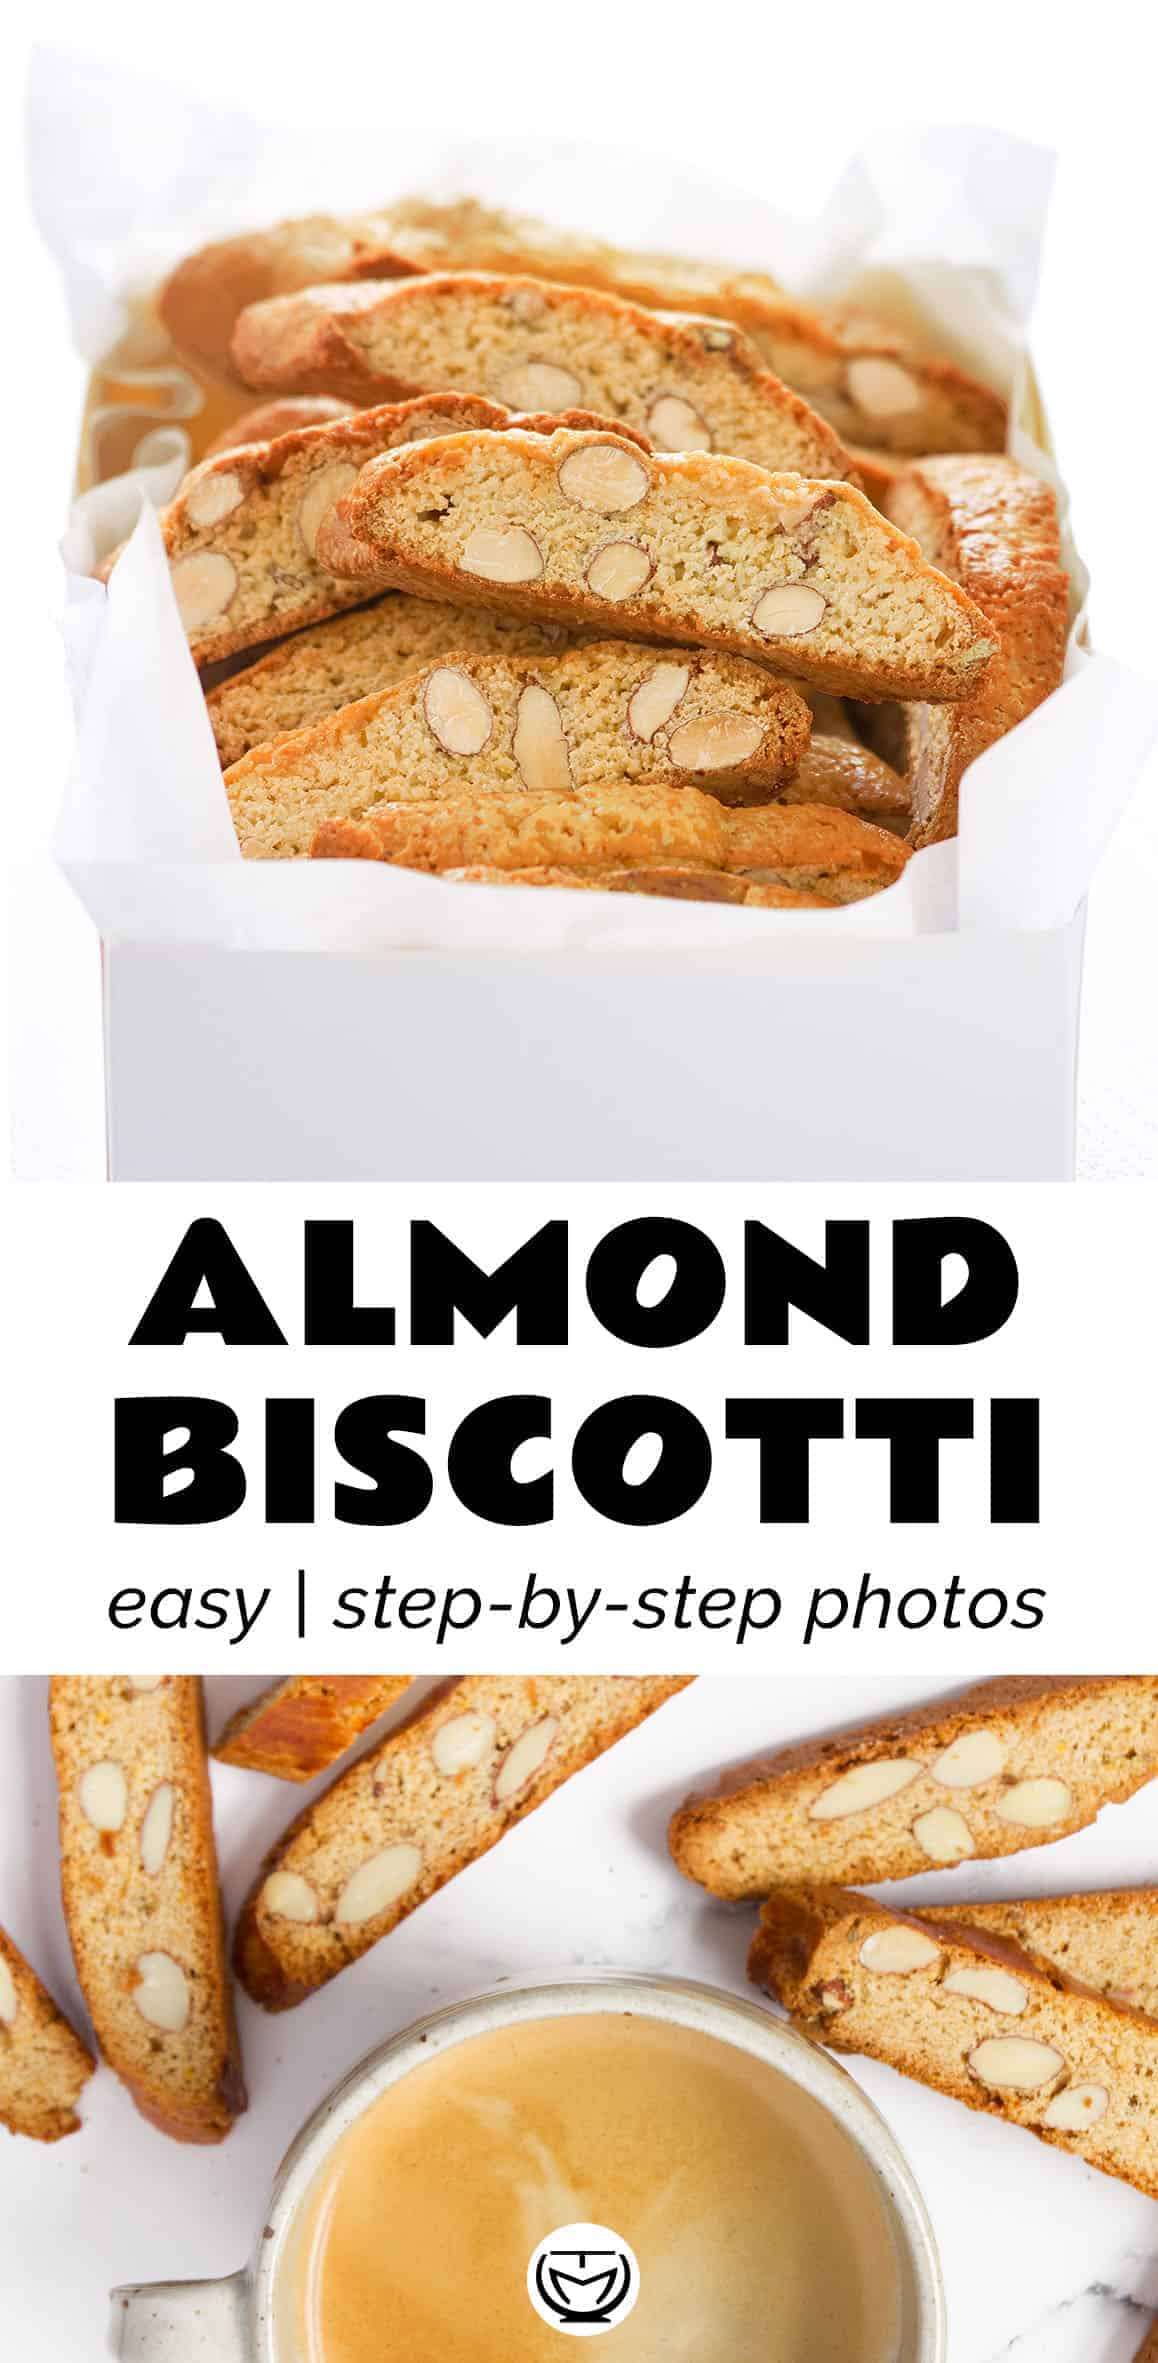 You can't resist these addictive crunchy almond biscotti, they're so crispy and mega delicious, with toasted almonds and hints of orange and honey.